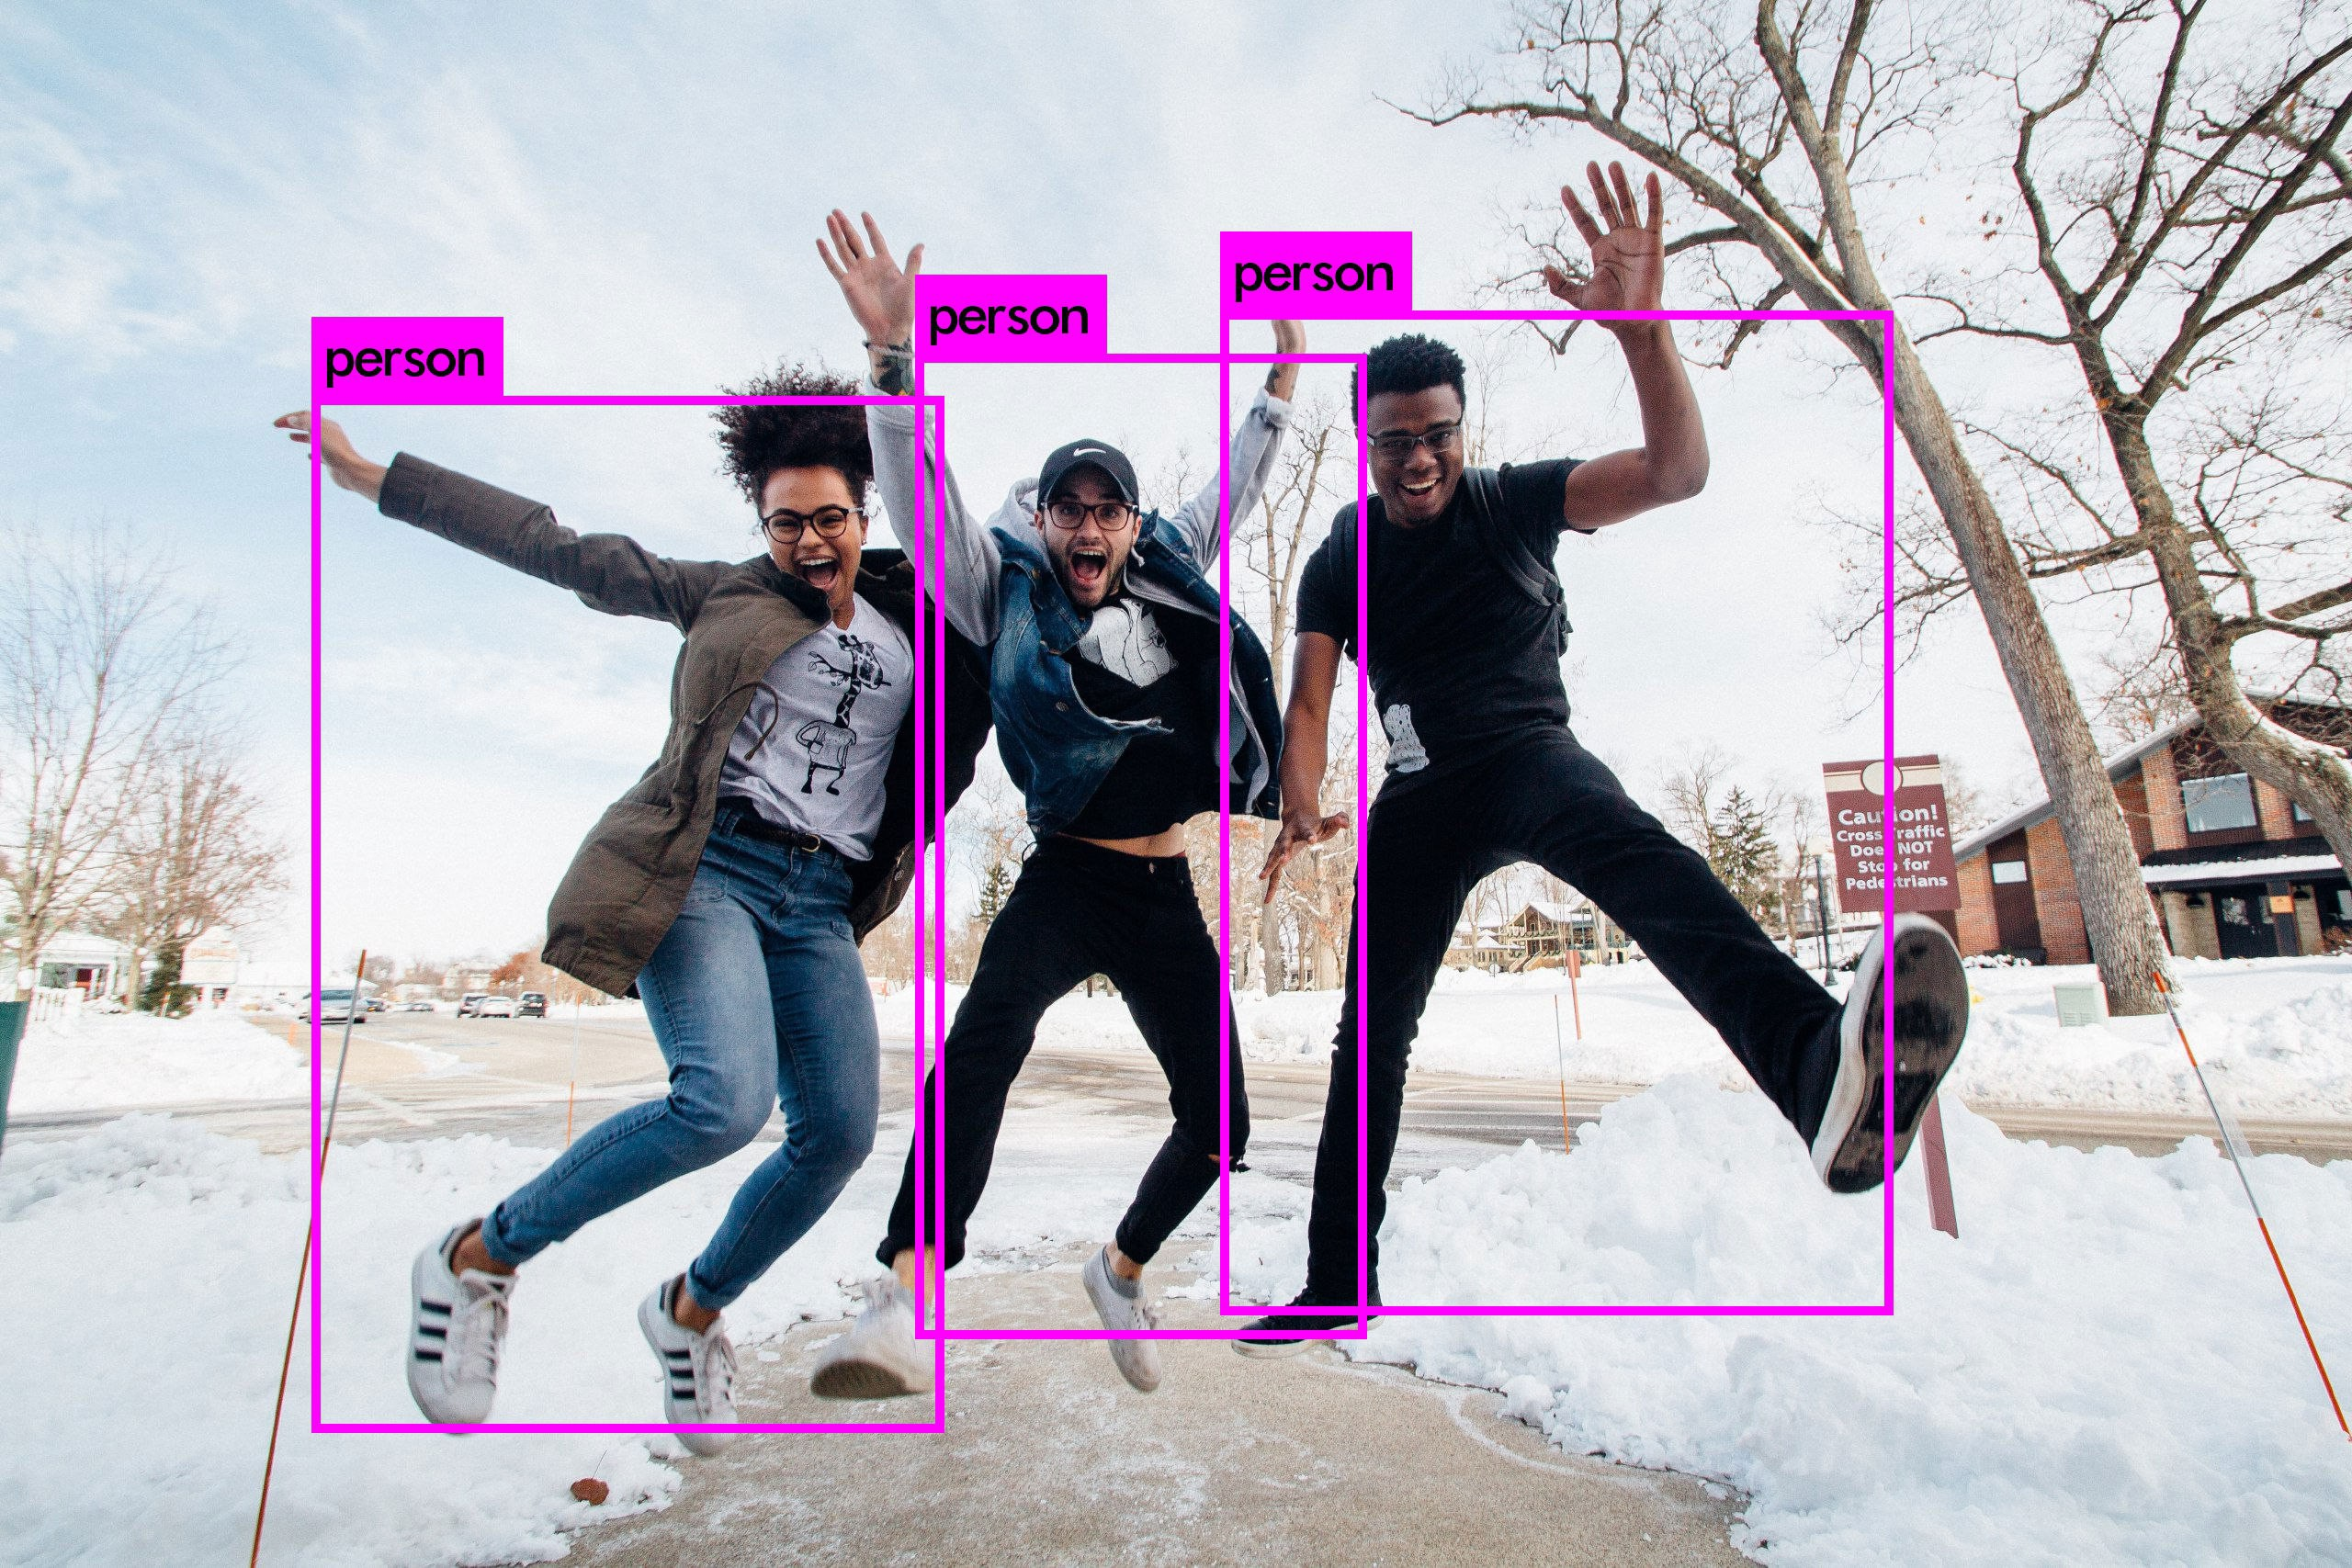 Object recognition over people jumping